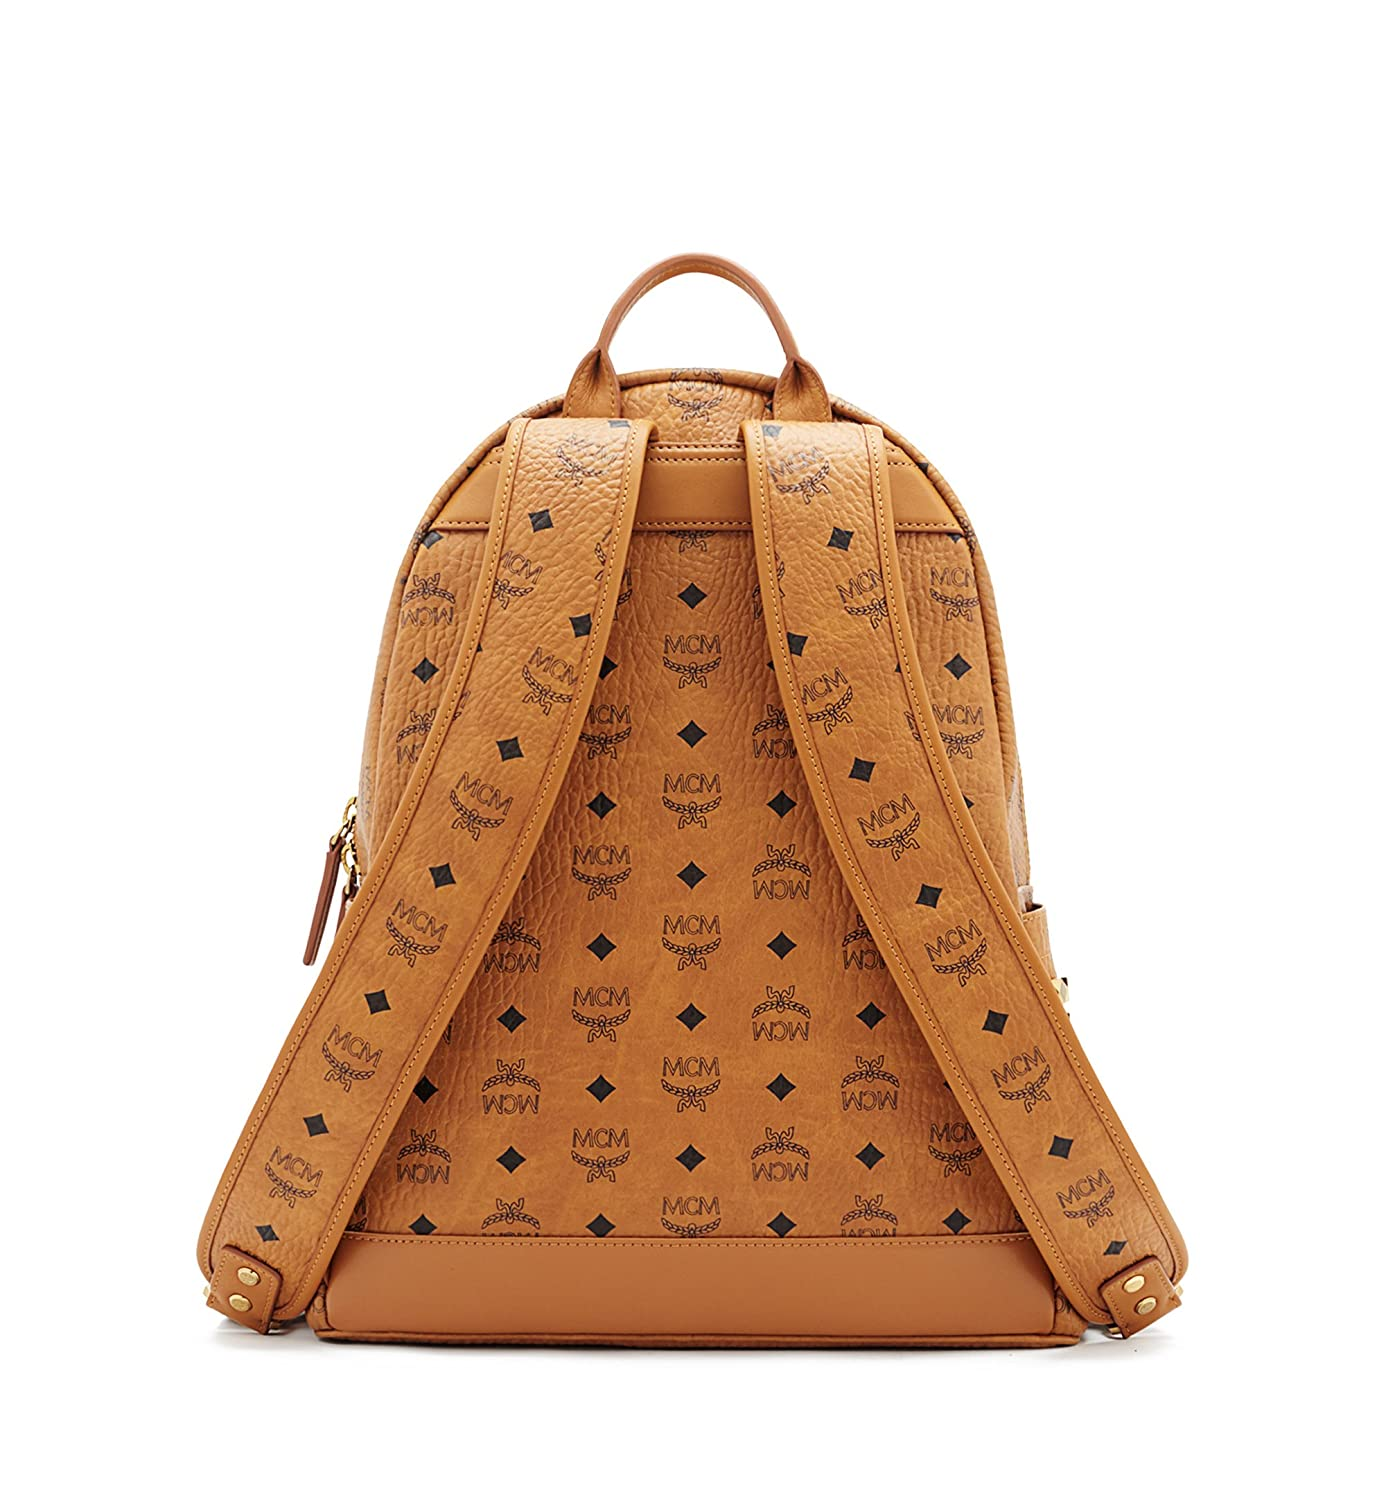 51c8f06f232d MCM women s rucksack backpack travel stark brown  Amazon.co.uk  Shoes   Bags